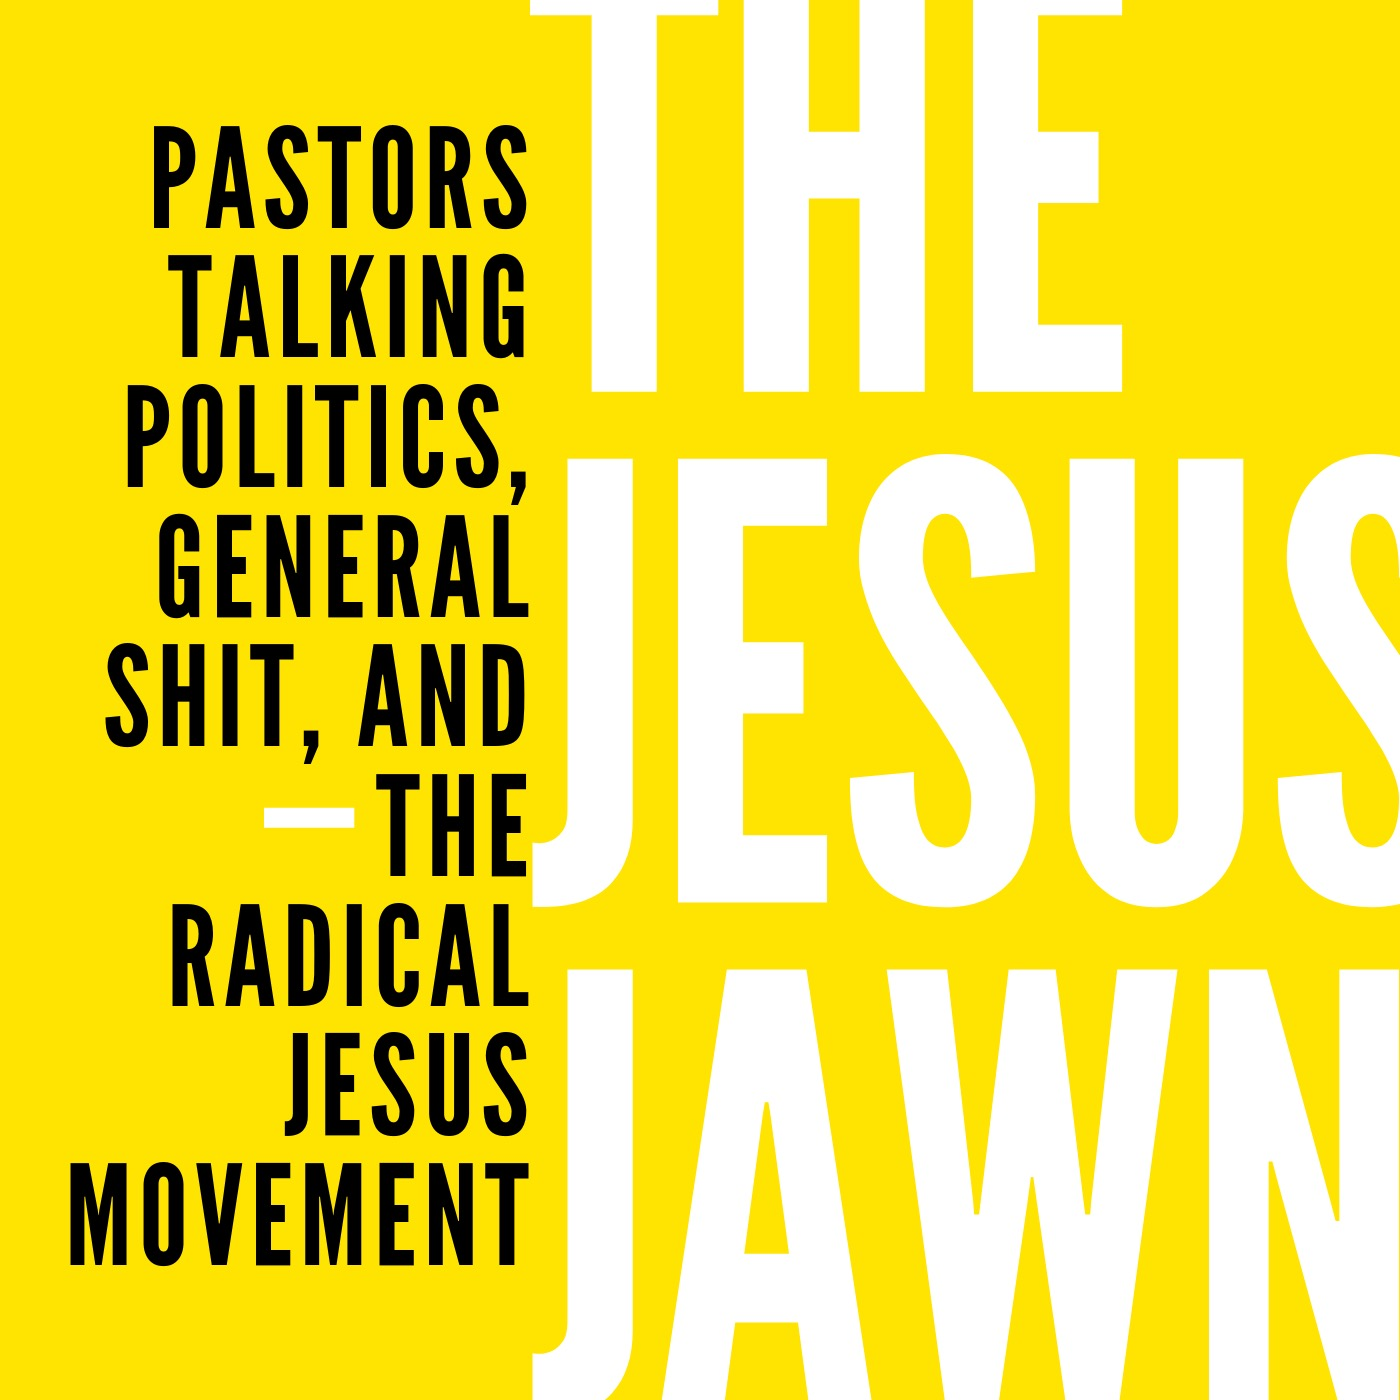 The Jesus Jawn - A couple of Pastors talking theology, news, video games, hip hop, jam bands, and literally anything else. The two hosts and their guests have fun humanizing a progressive Christian movement that has became a bit of a screaming match.